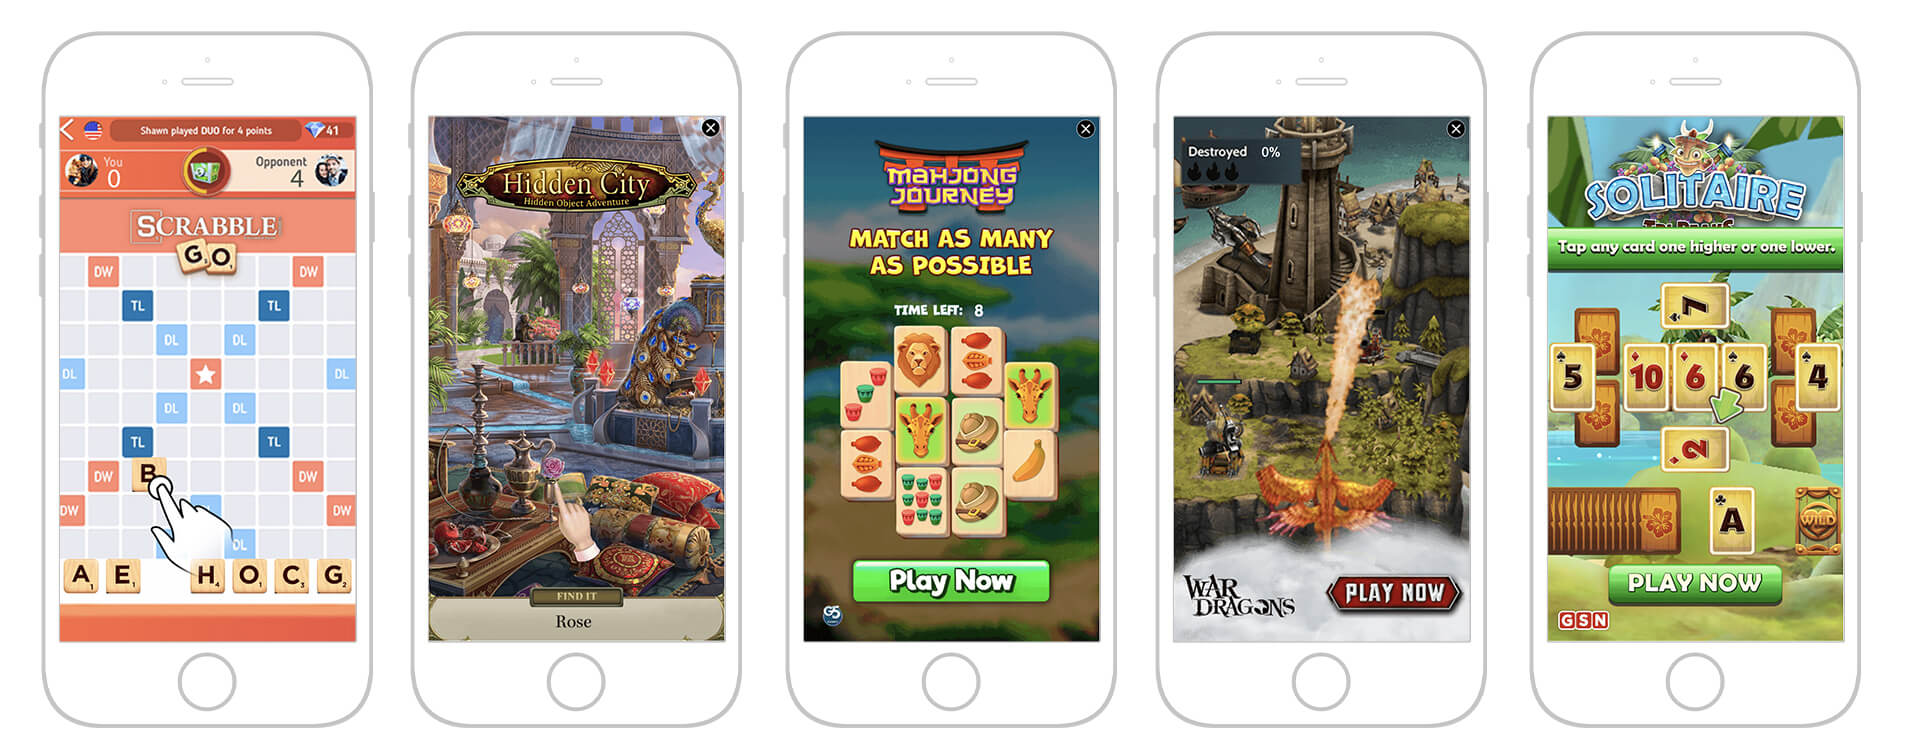 Five examples of our playable ads, left to right: Scrabble Go, Hidden City, Mahjong Journey, War Dragons, and Solitaire